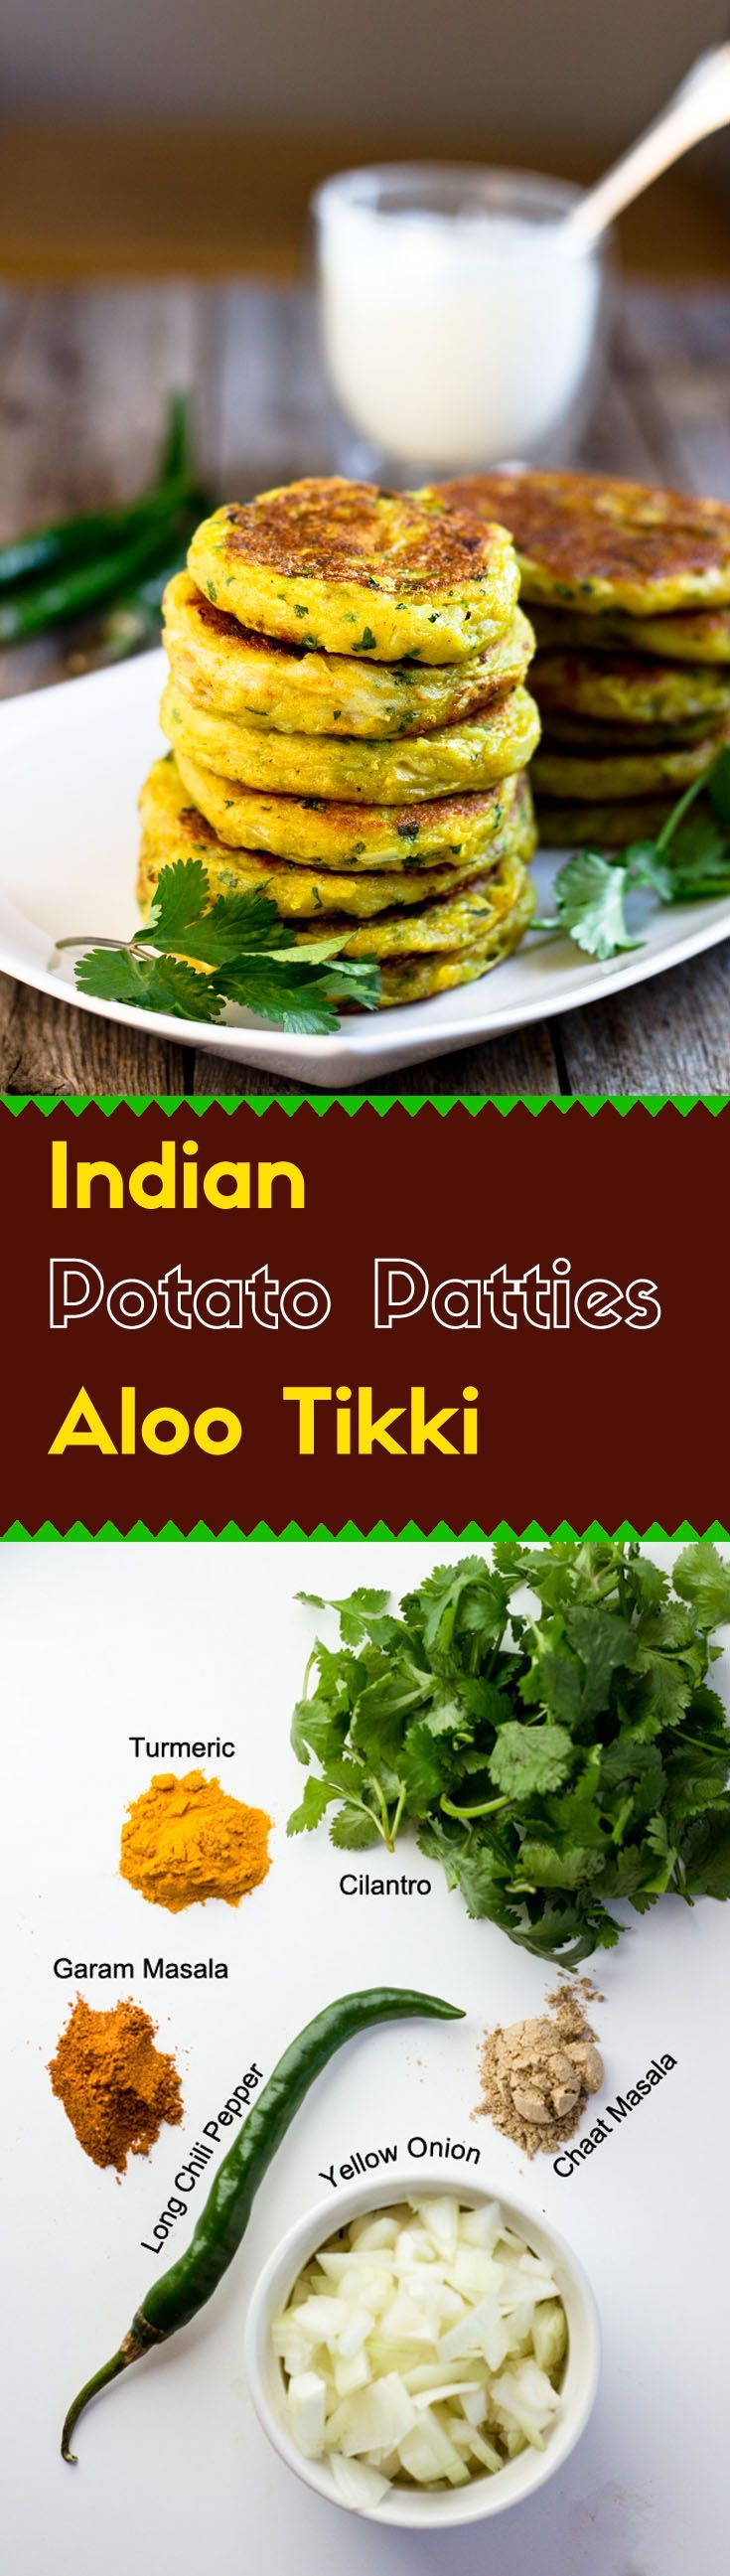 These Indian potato patties are rich in flavor and have complex textures.The…